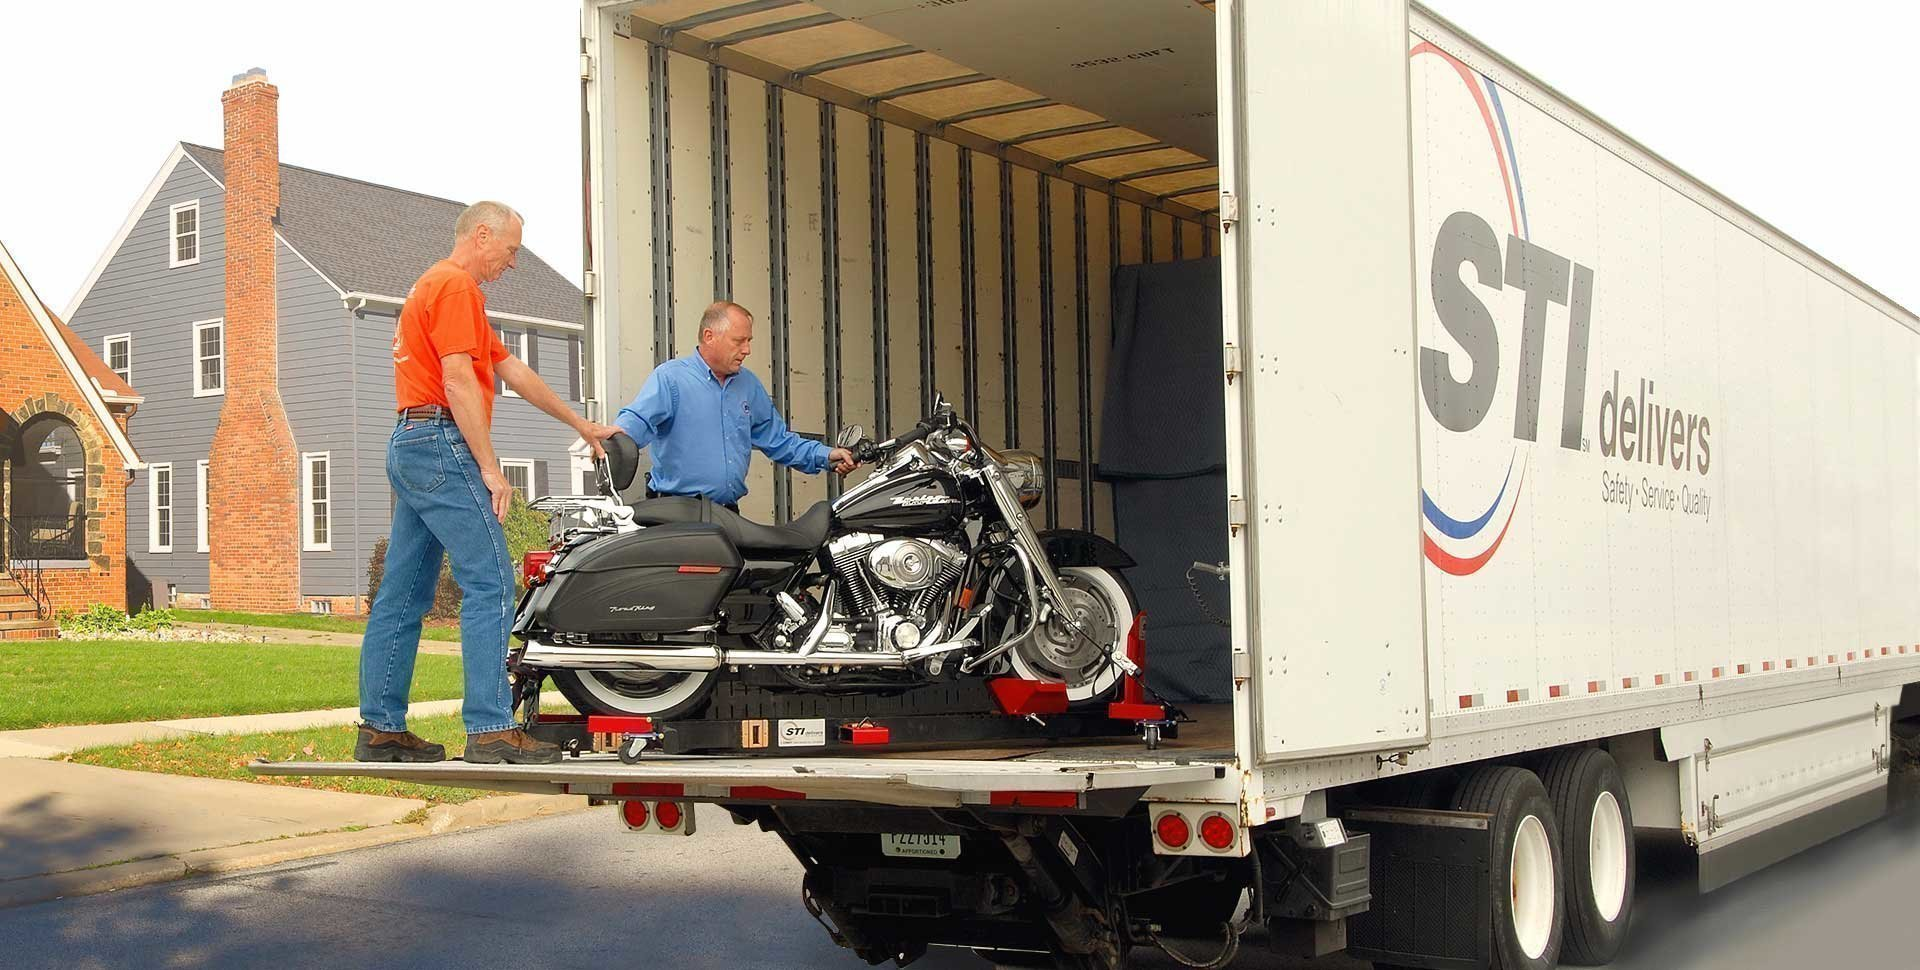 Shipping a motorcycle includes loading on the truck using a specialized lift gate